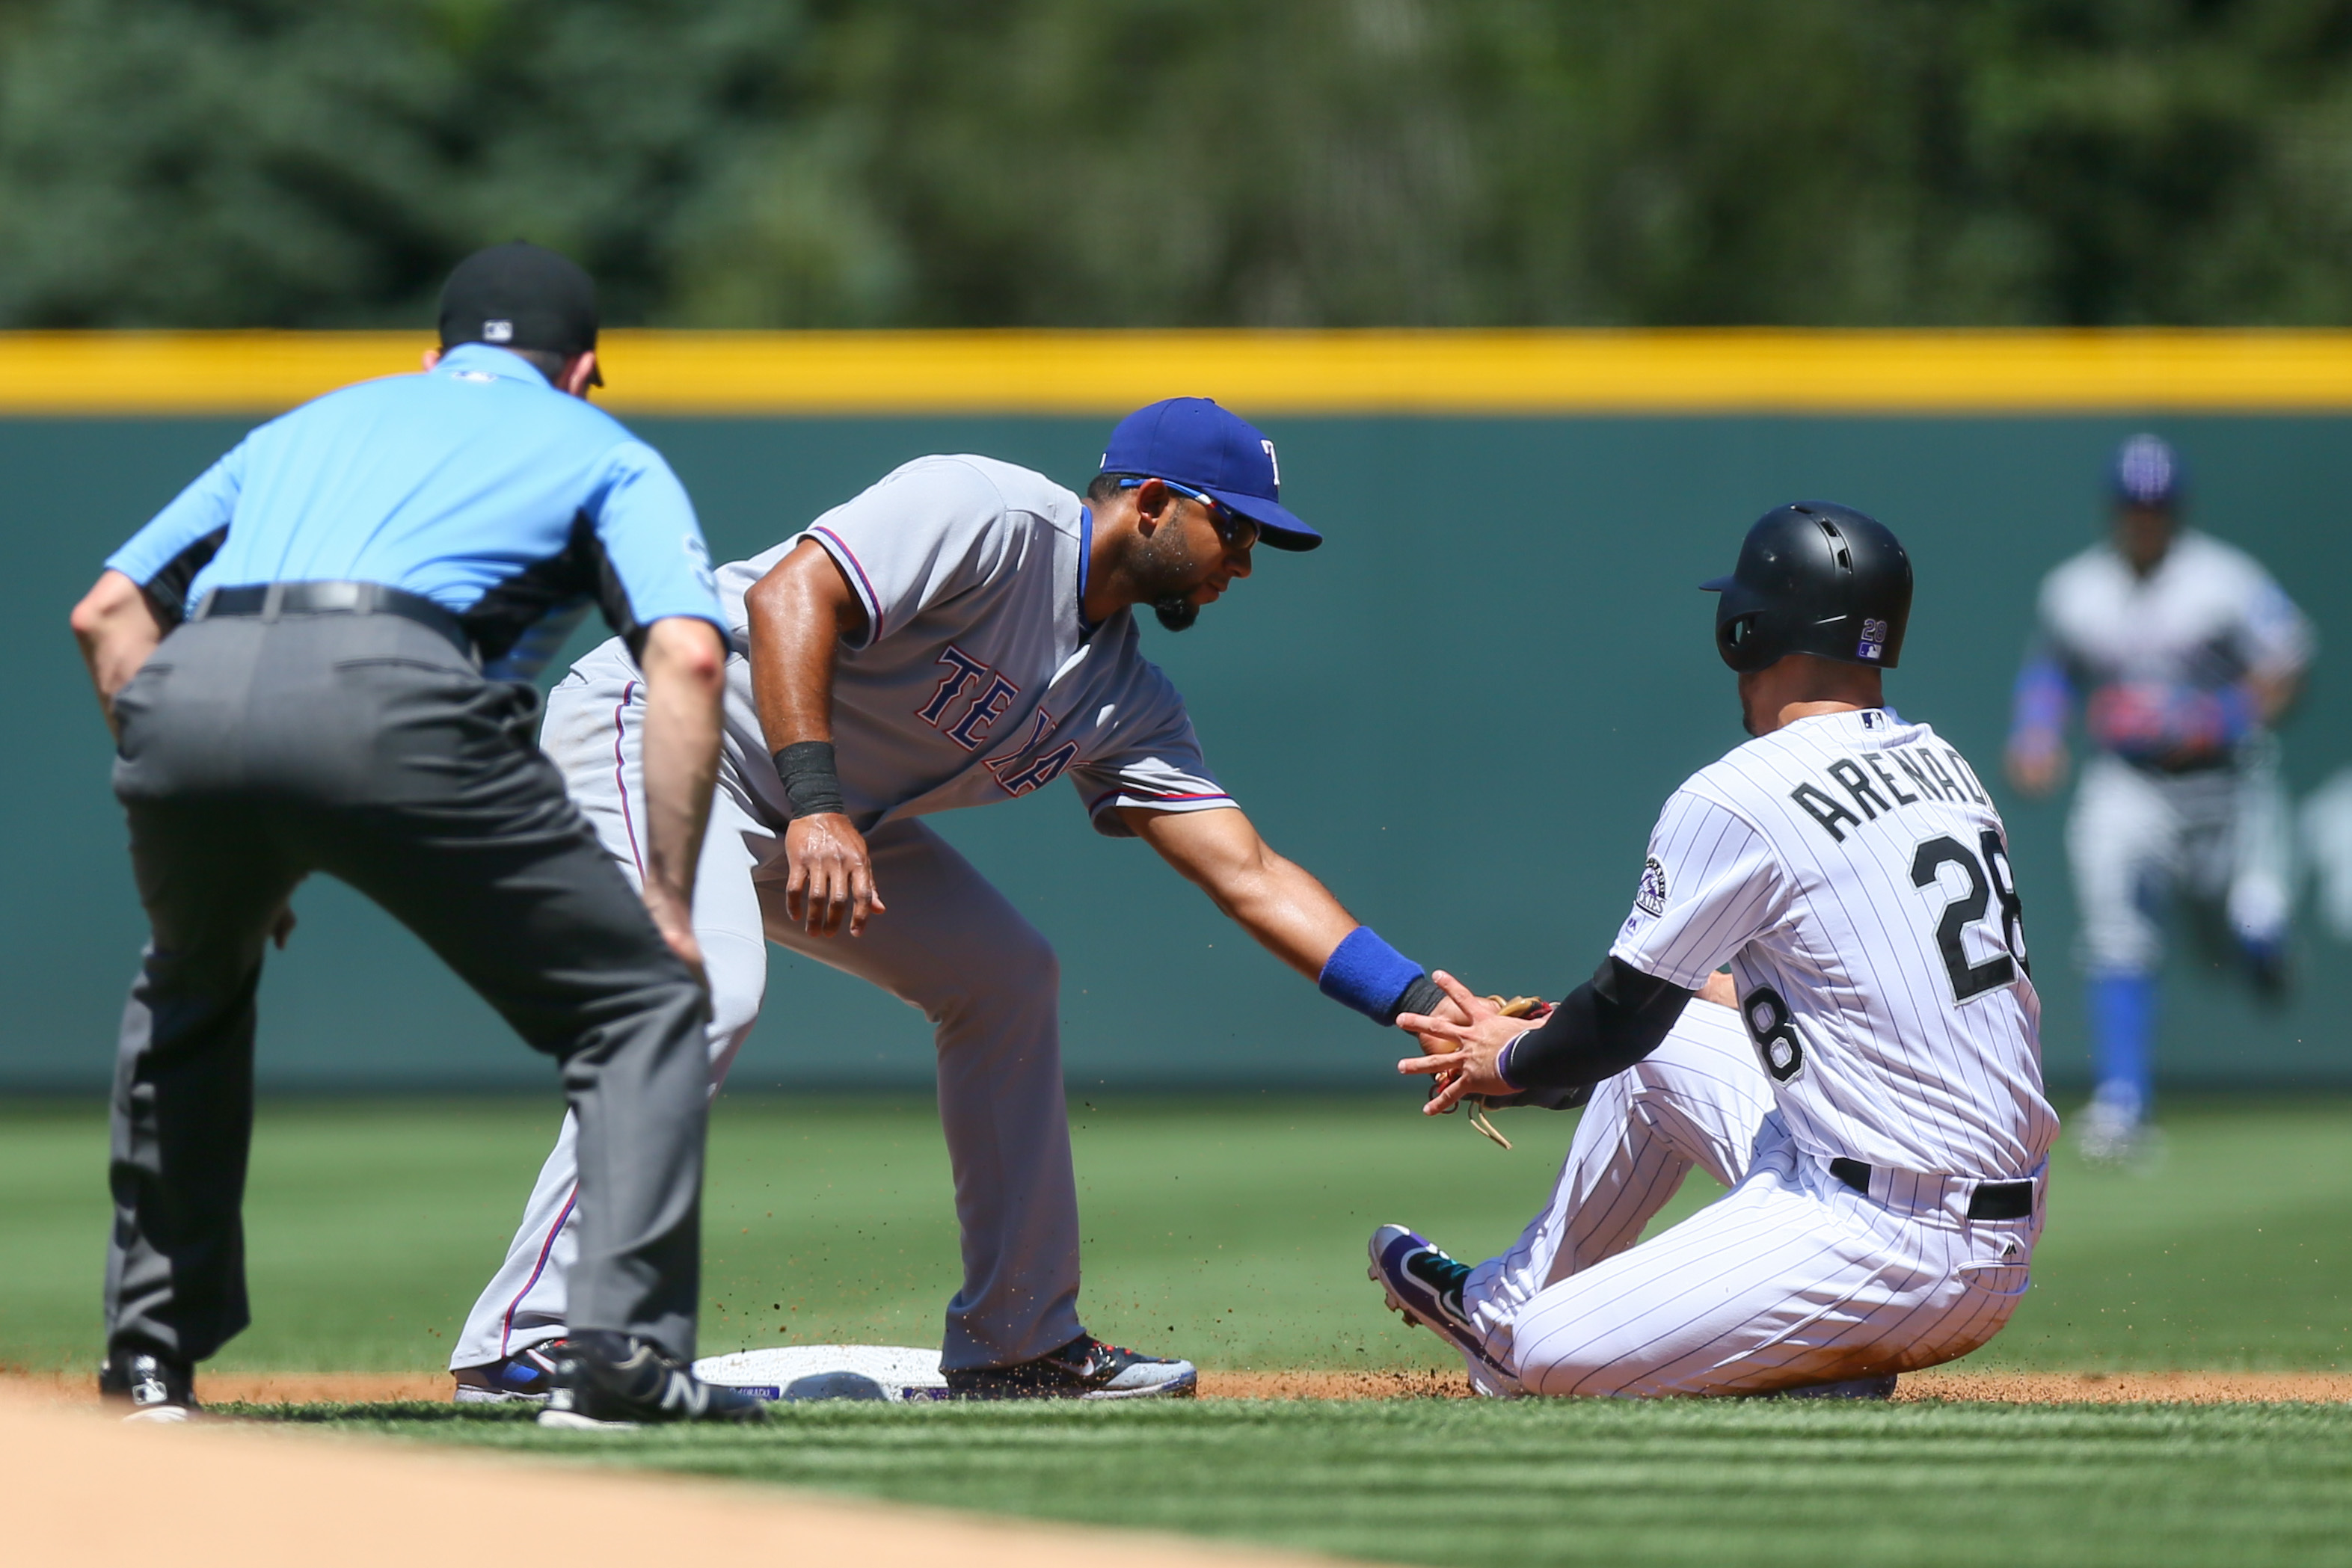 Nolan Arenado #28 of the Colorado Rockies is tagged out by Elvis Andrus #1 of the Texas Rangers in a rundown as umpire Carlos Torres looks closely during the first inning at Coors Field on August 9, 2016 in Denver, Colorado. (Photo by Justin Edmonds/Getty Images)